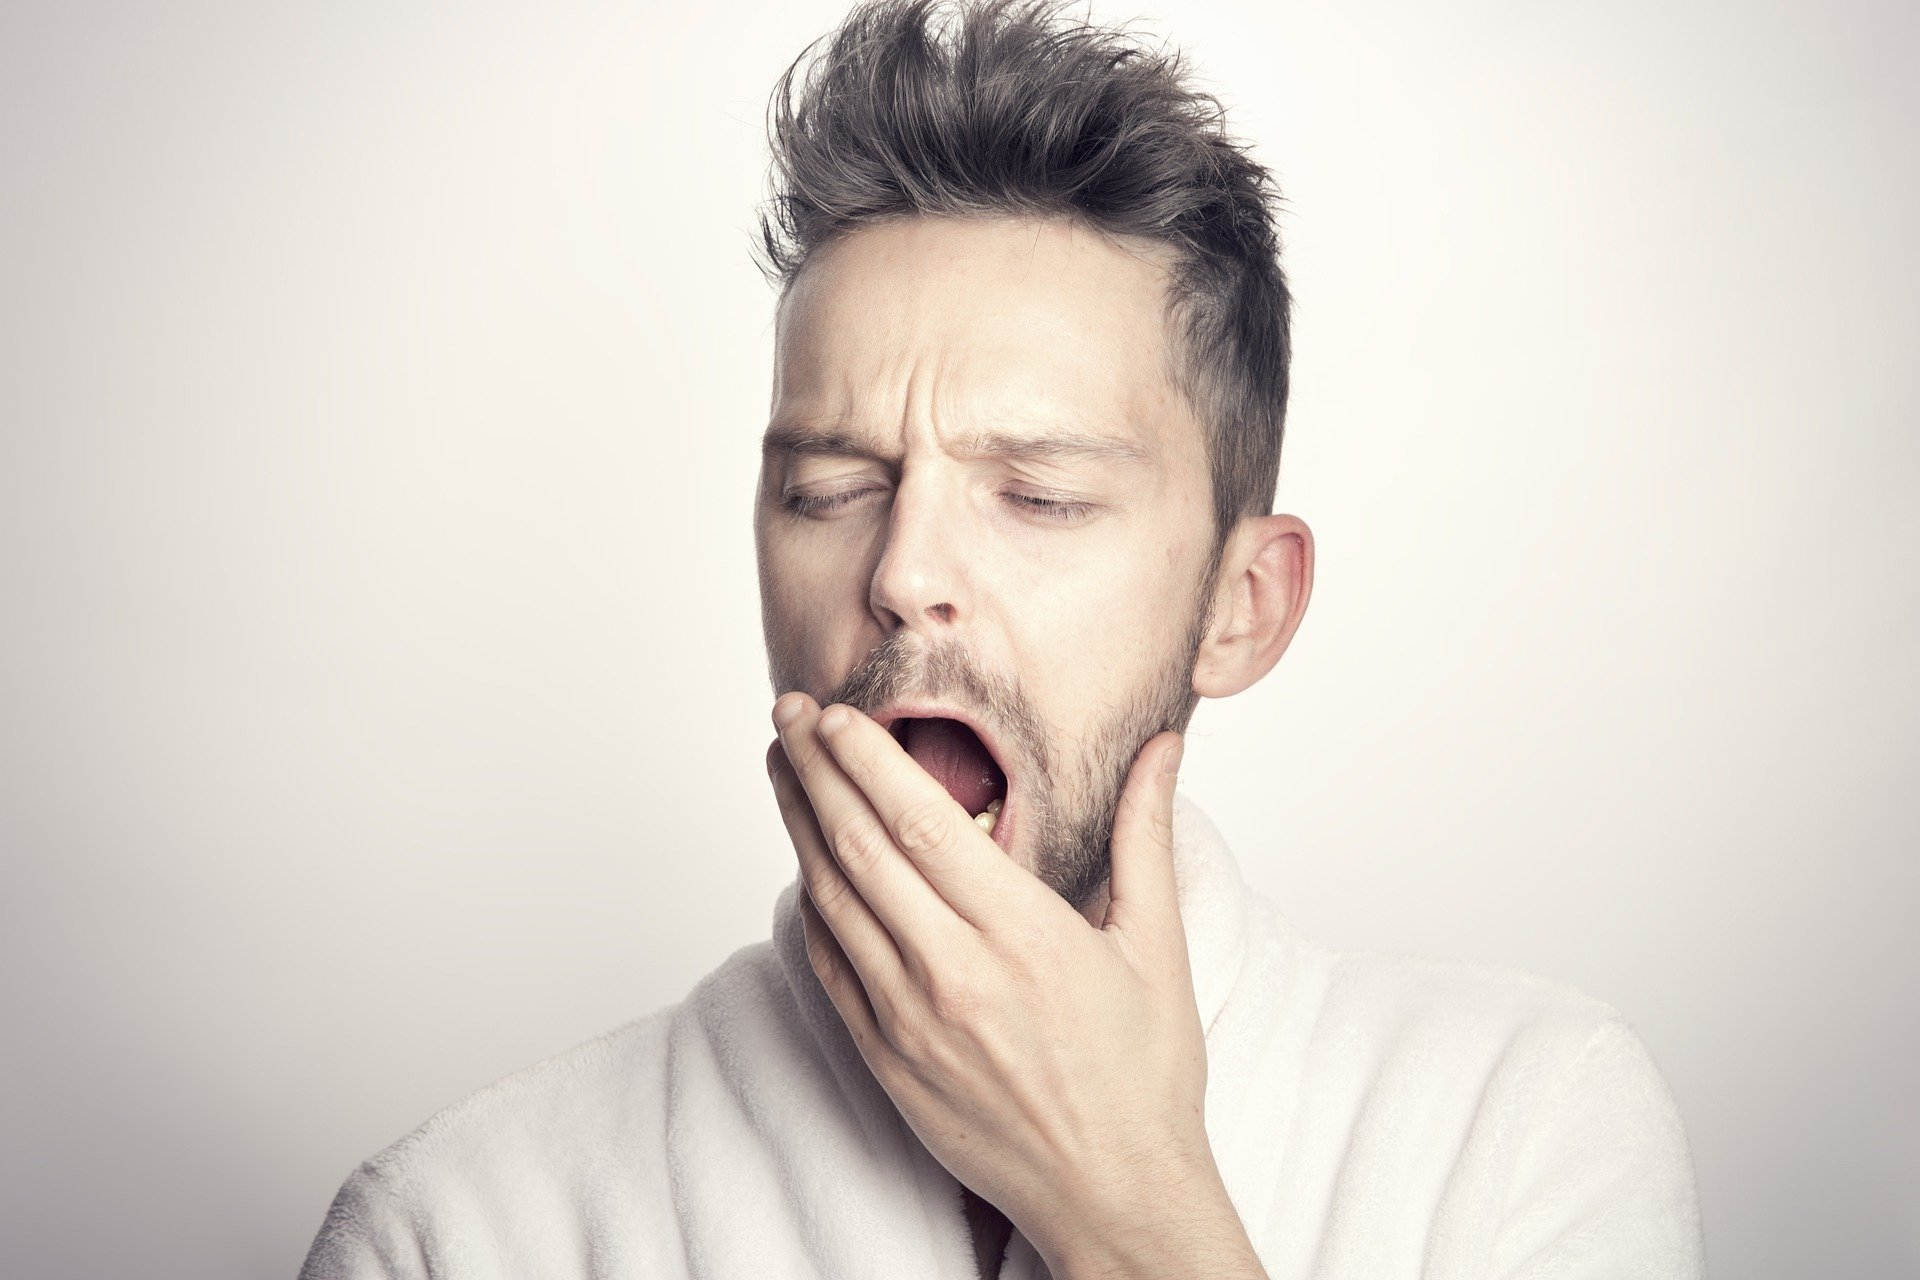 Have you ever been yelled at for yawning? | Photo: Pixabay/Sammy-Williams